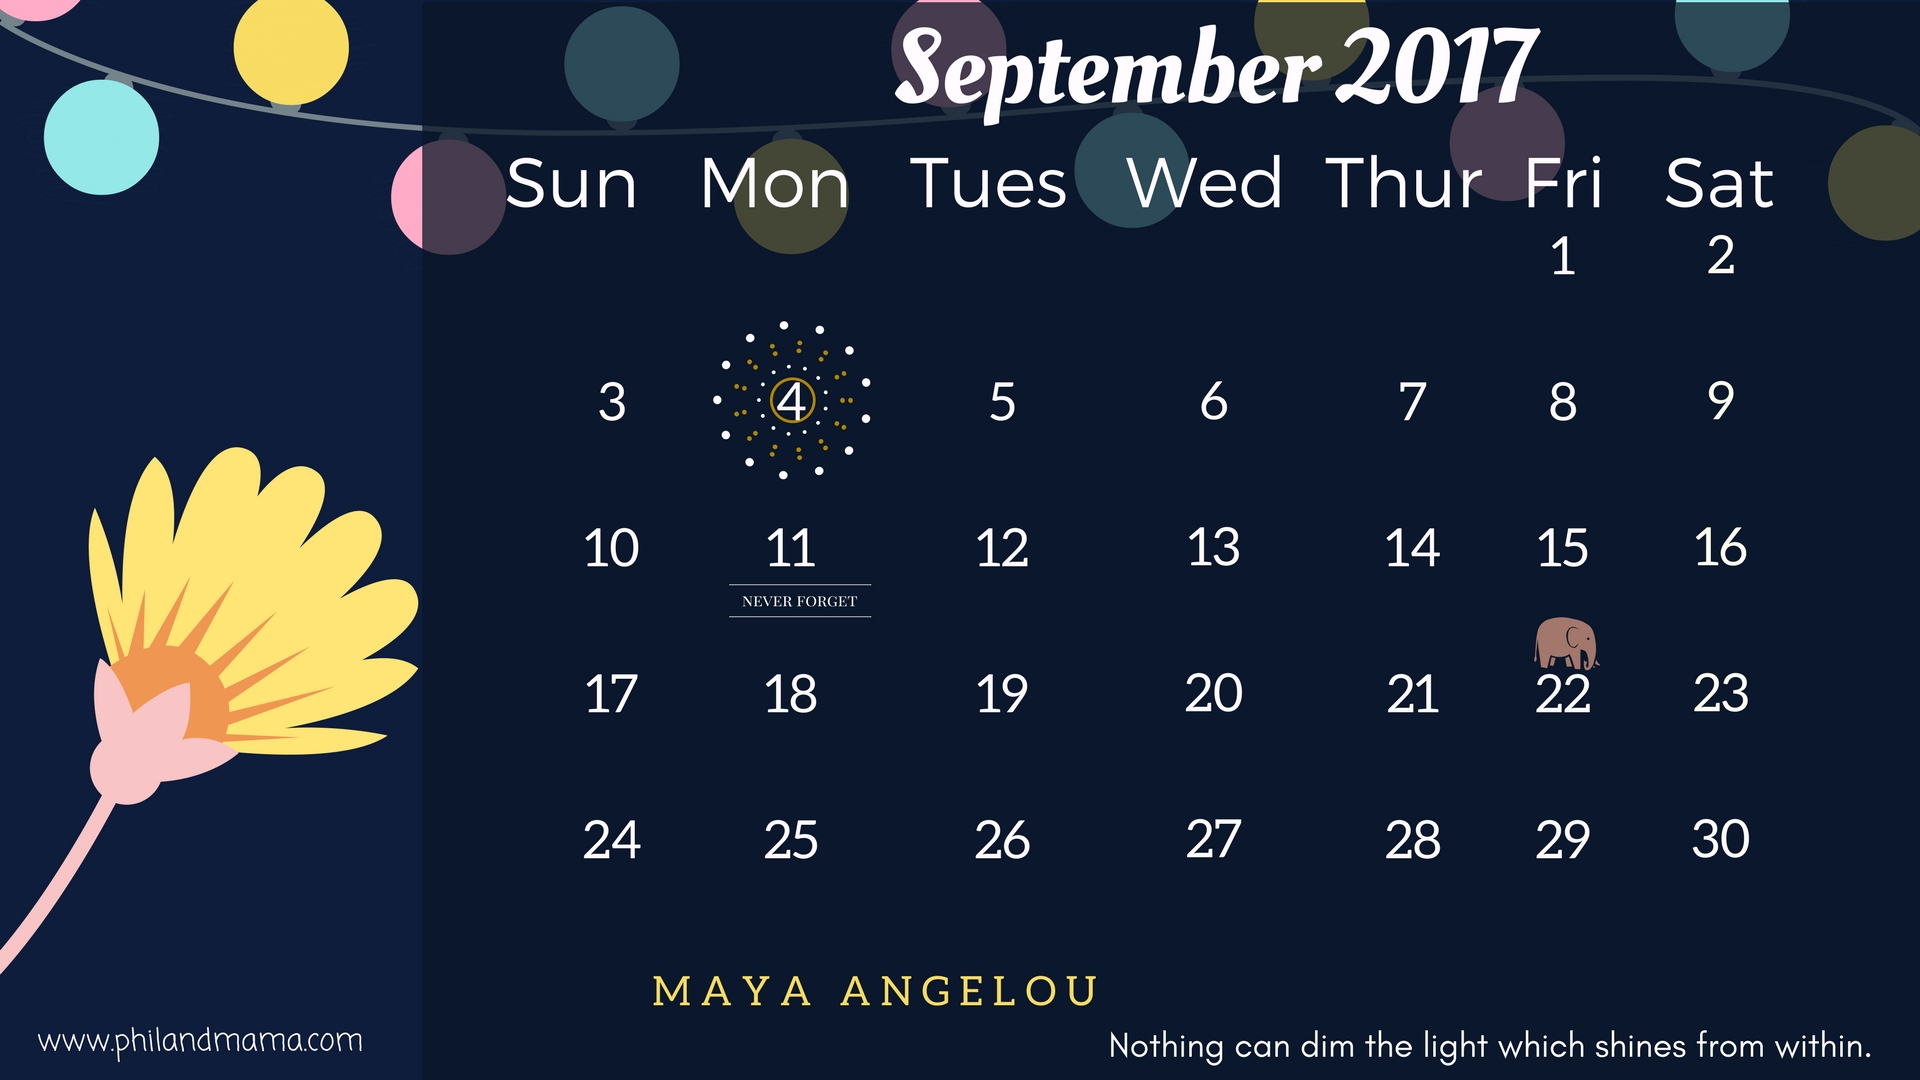 SEPTEMBER 2017 FREE PRINTABLE CALENDAR.CLICK ON THE IMAGE FOR THE PDF FILE. FOR THE IMAGE FILE, RIGHT-CLICK AND SAVE AS.